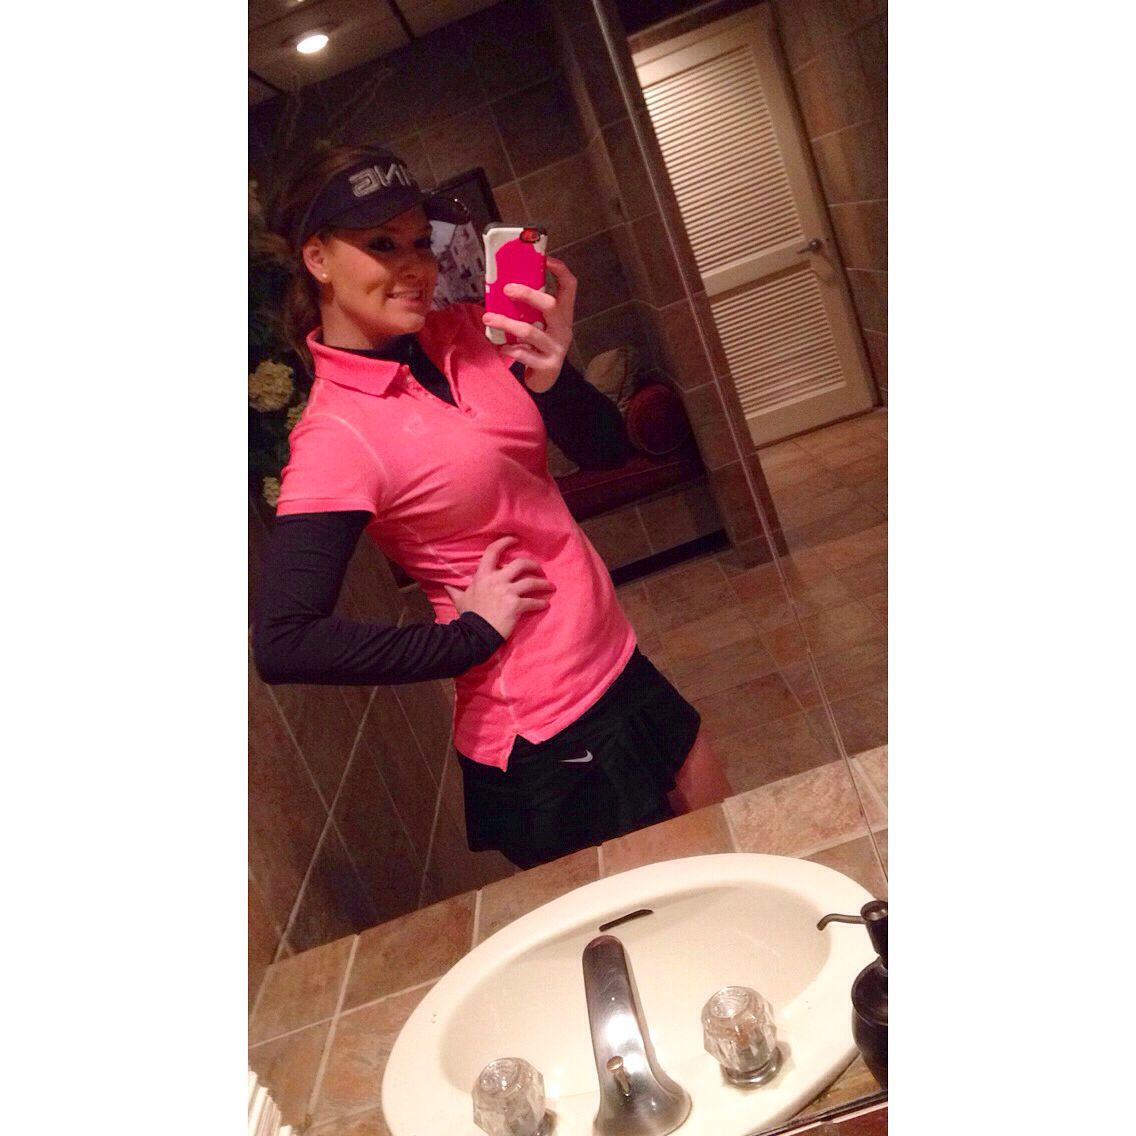 MY OWN golf outfit from last weekend #golf#golfgirls#golfing#golfoutfit#golffashion